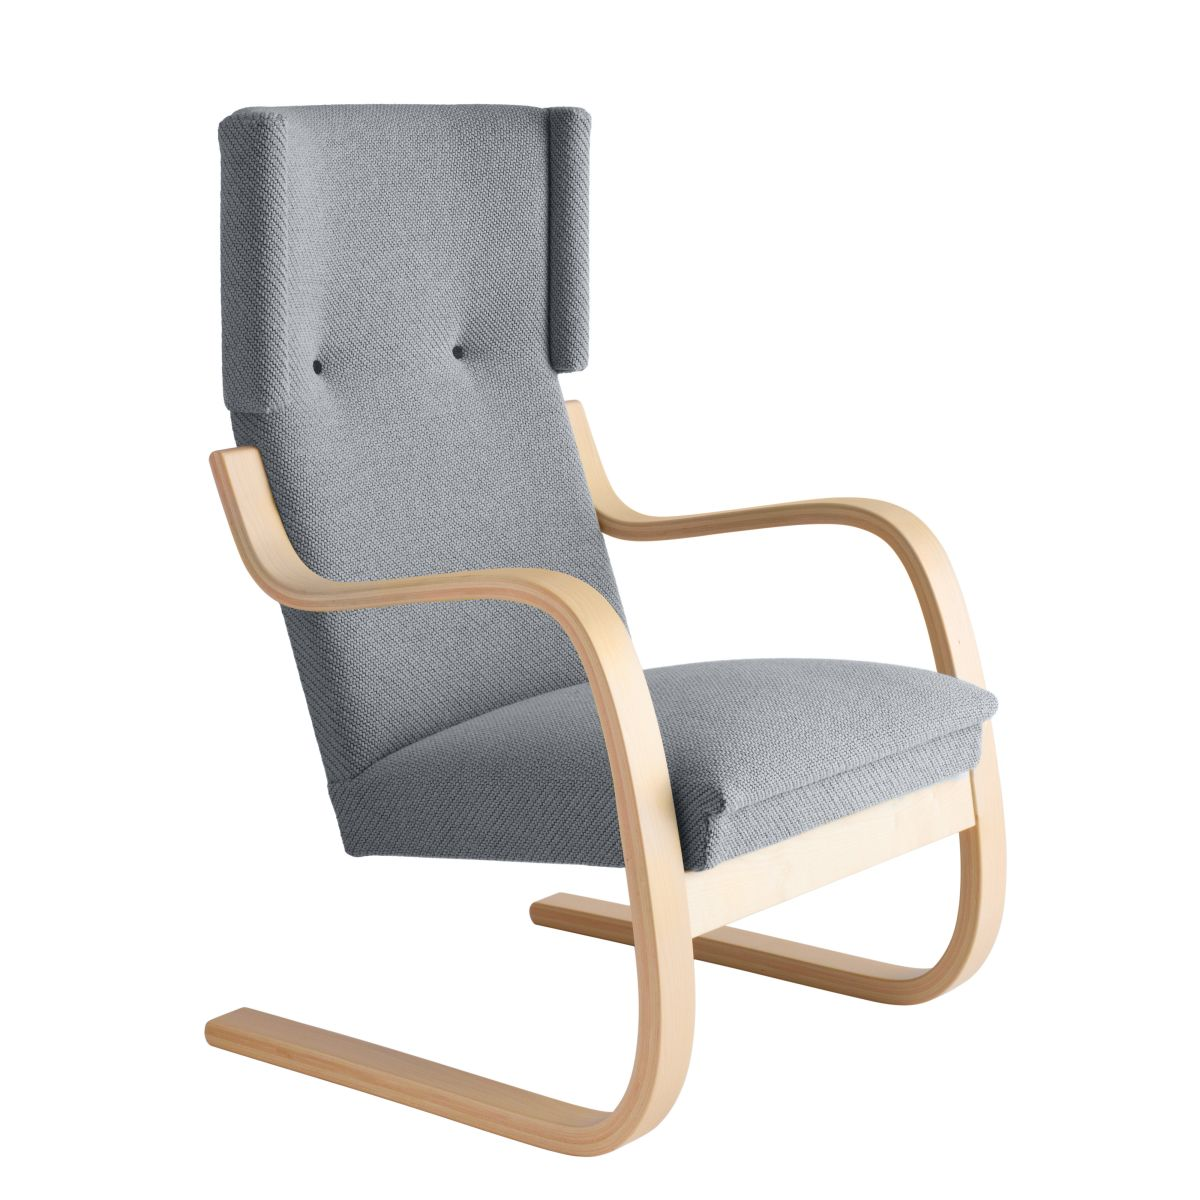 Armchair 401 Birch Clear Laquer Seat Fabric Upholstery Artek Grey 2494502